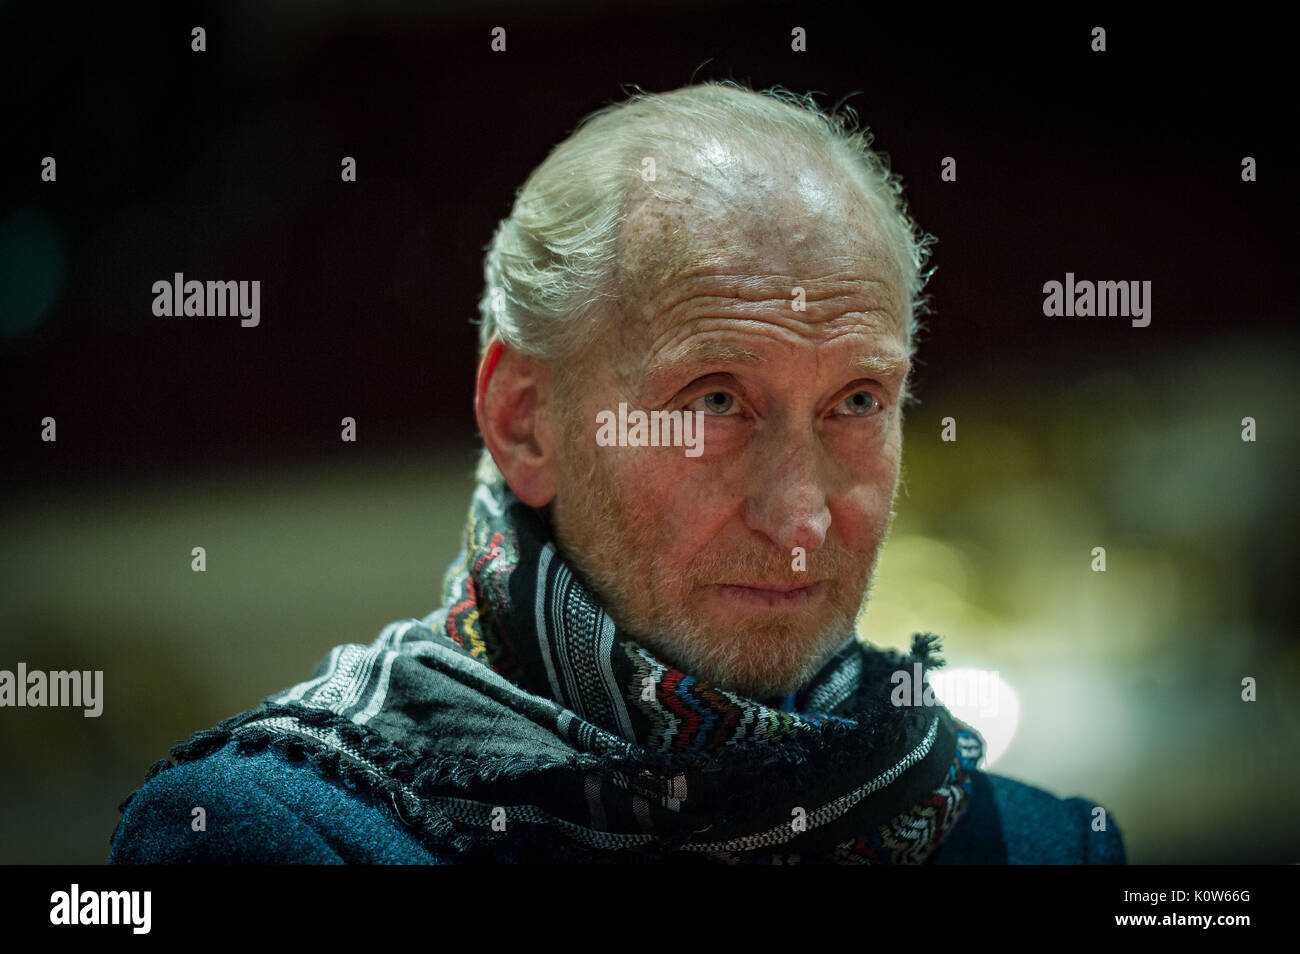 Edinburgh UK Aug 25 2017;  Game of Thrones actor Charles Dance at the Usher Hall with the Cincinnati Symphony Orchestra as part of the Edinburgh International Festival. Lincoln Portrait, which the Cincinnati orchestra premiered in 1942, employs the great President's writings, performed by narrator Charles Dance.credit steven scott taylor / alamy live news - Stock Image